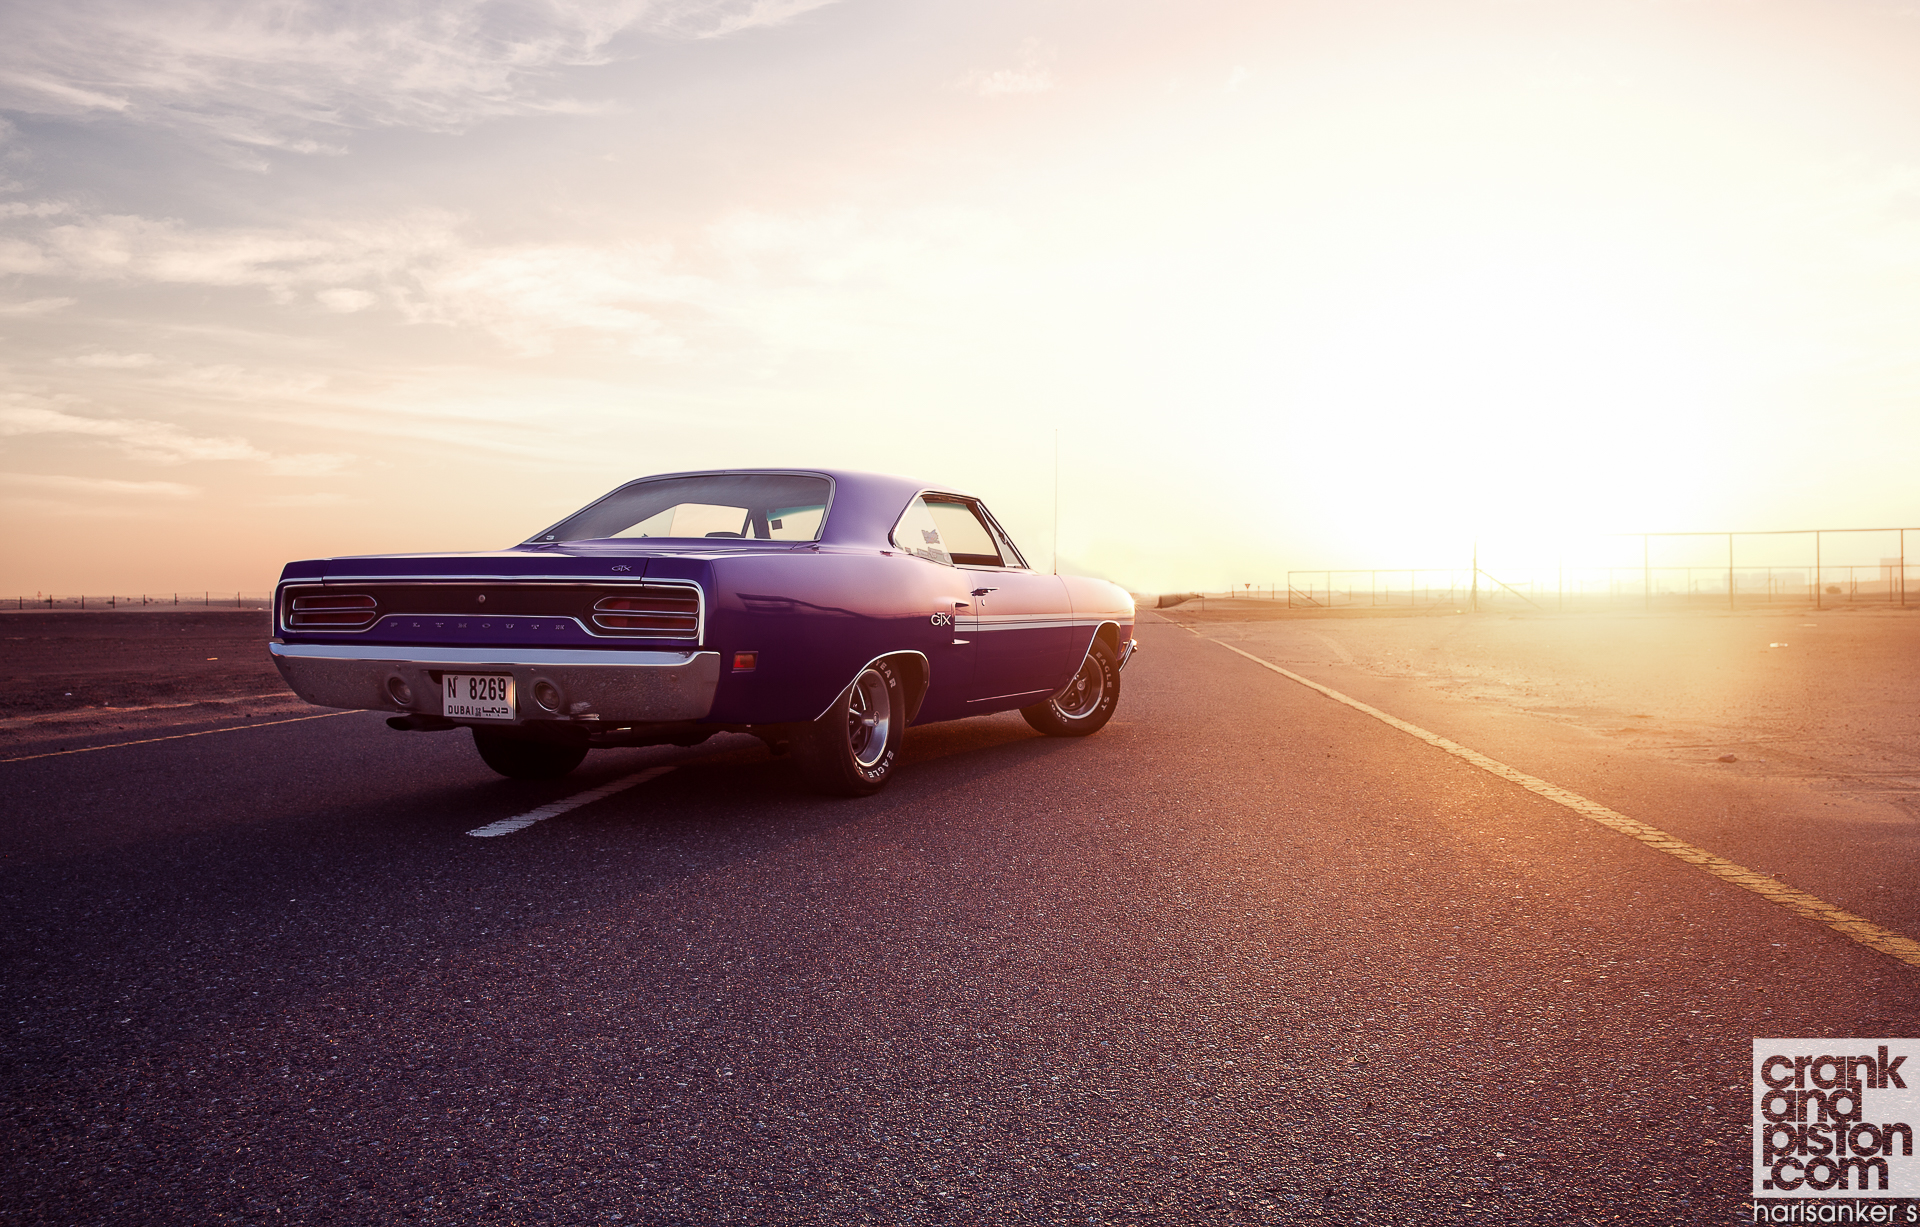 Fast And Furious 4 Cars Wallpapers 1970 Plymouth Gtx Set 1 Crankandpiston Com